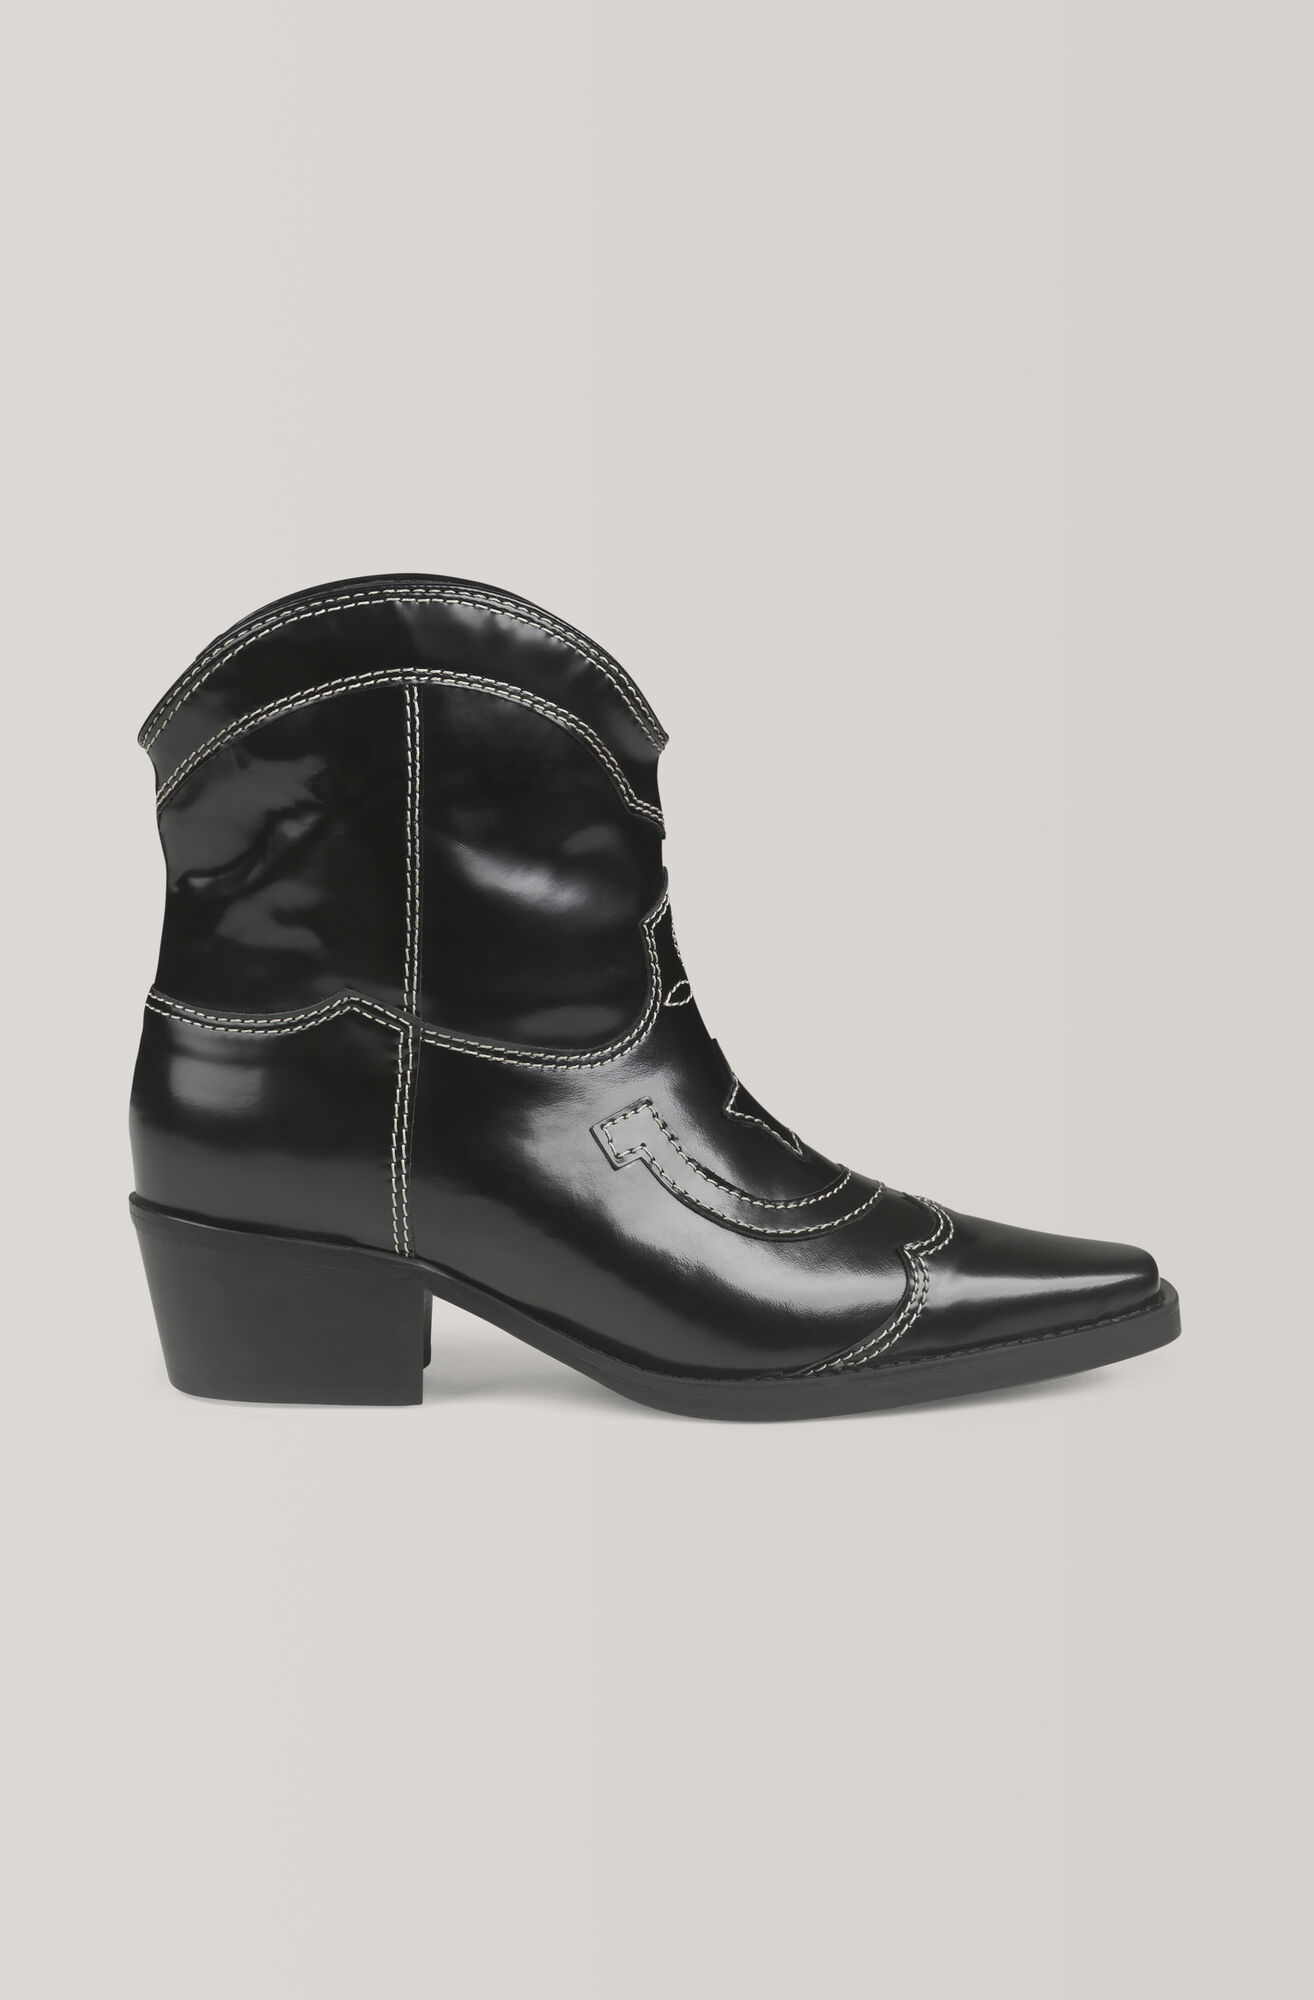 Low Texas Ankle Boots, Black, hi-res